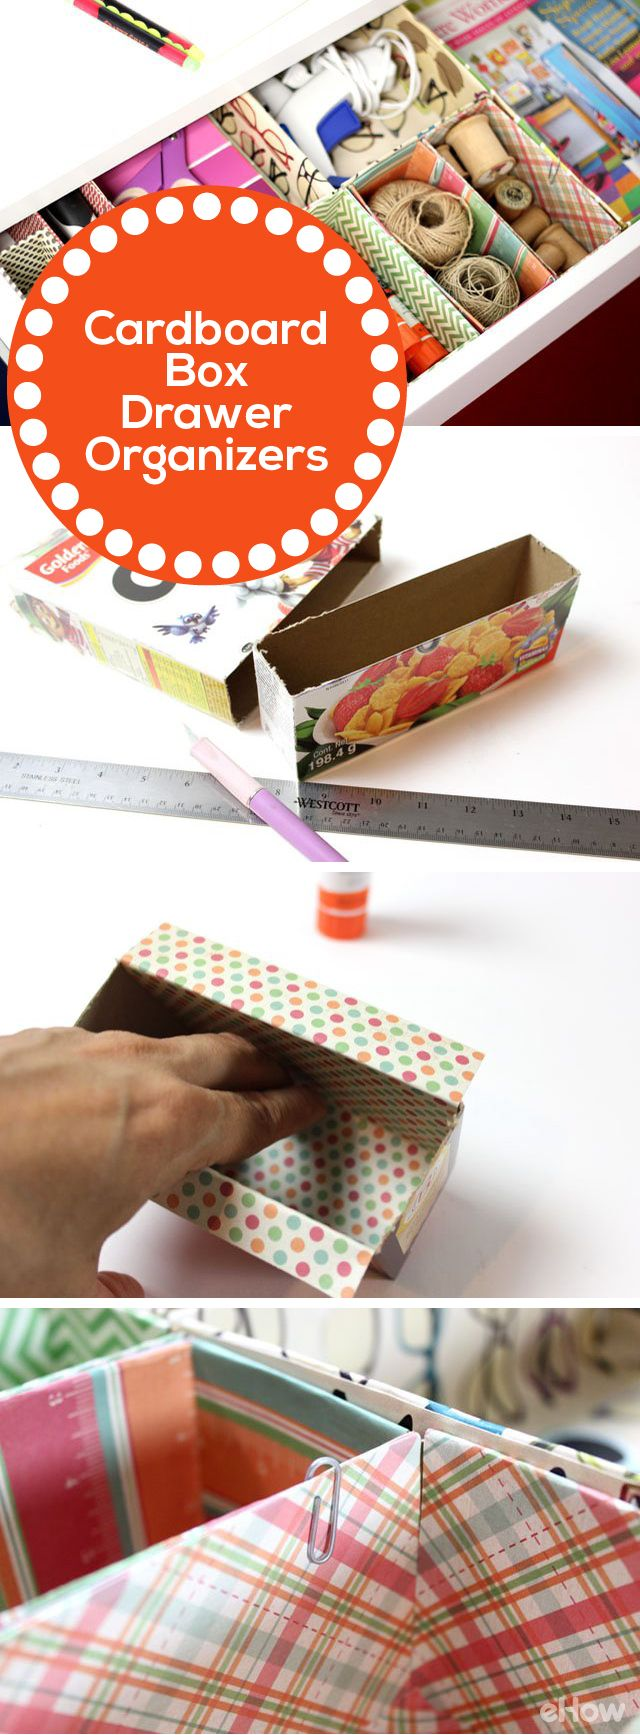 When you open your desk drawer, do you see a mishmash of office supplies and loose papers? These easy DIY drawer organizers made from cookie and cereal boxes are a great organizing solution. (Bonus: They're also a good excuse to eat more cookies and cereal!)  Read more: http://www.ehow.com/how_12340794_diy-desk-drawer-organizers.html?utm_source=pinterest.com&utm_medium=referral&utm_content=freestyle&utm_campaign=fanpage